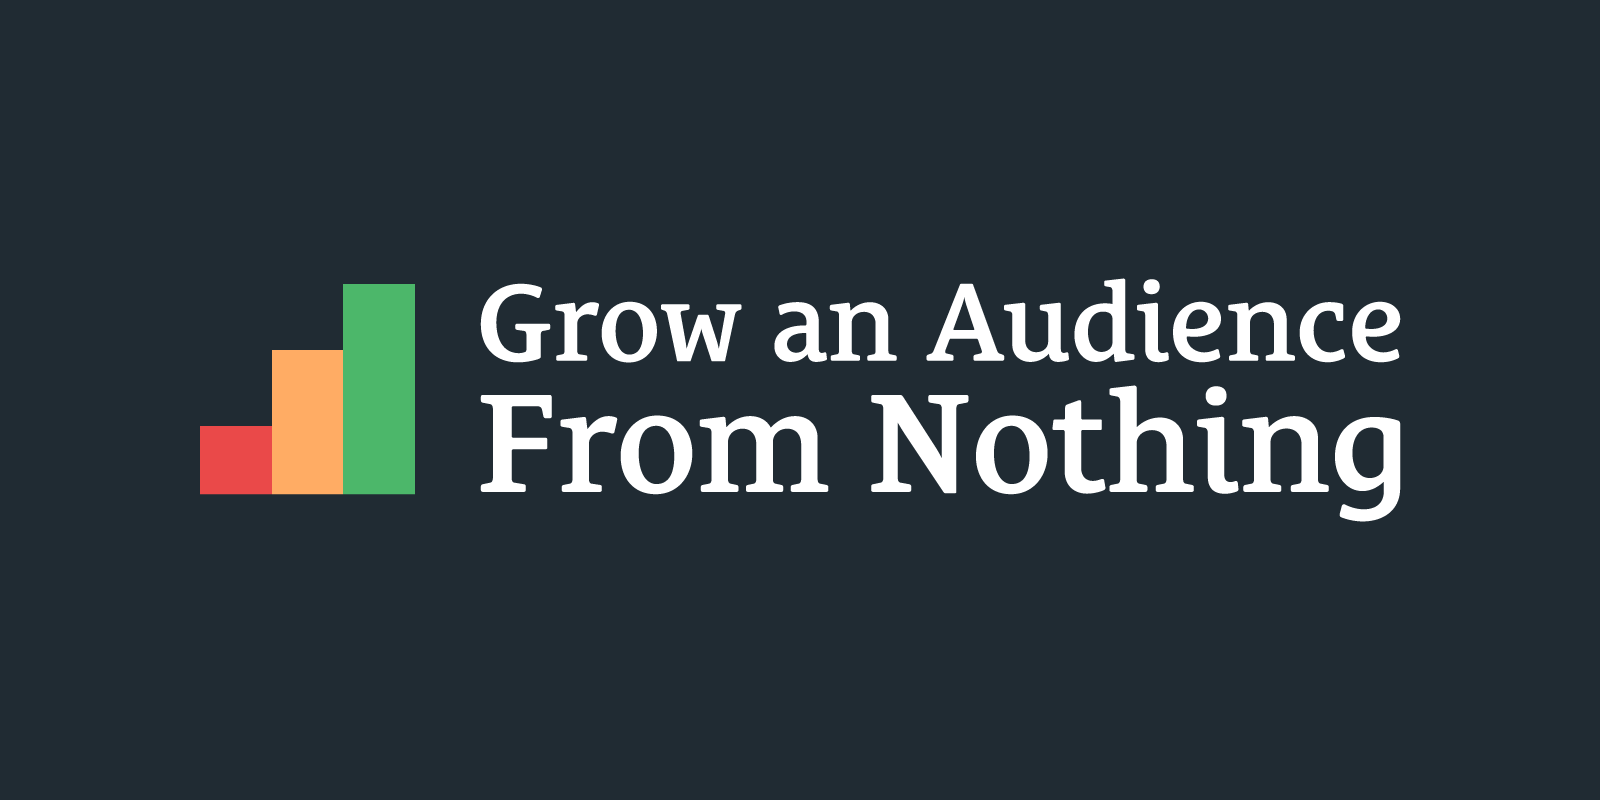 The Podcast Dude 51: How Do I Build an Audience From Nothing?